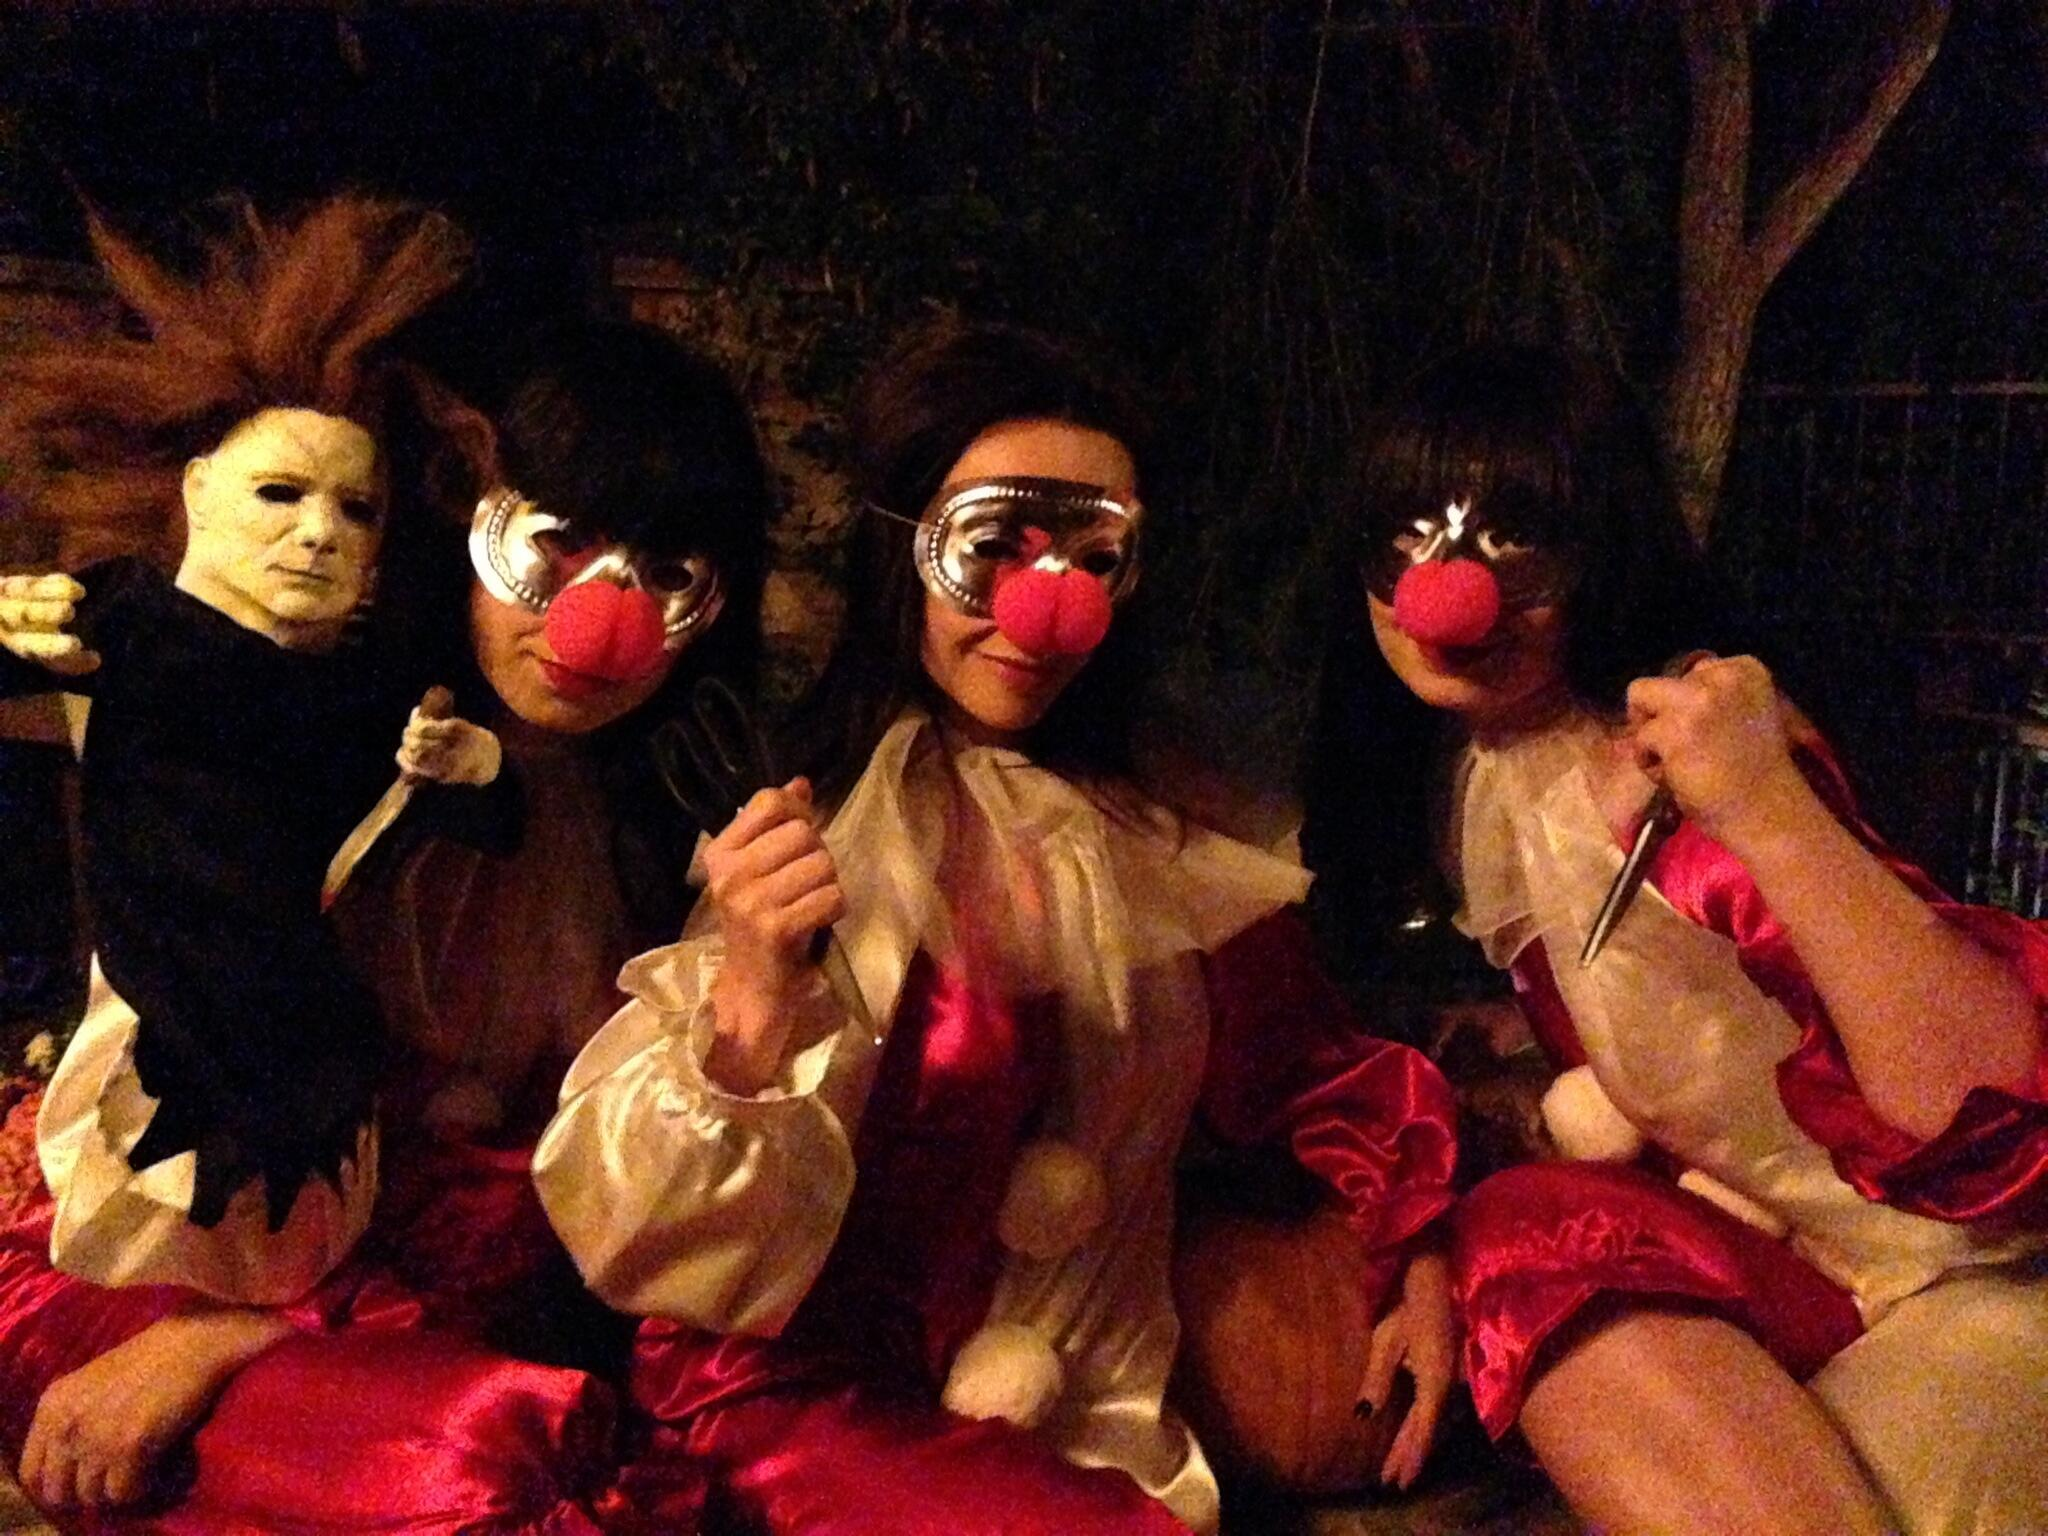 One more for the road bitches!!!! #halloween #triplets #screamqueens #theboogeyman http://t.co/PCtl98o0BY